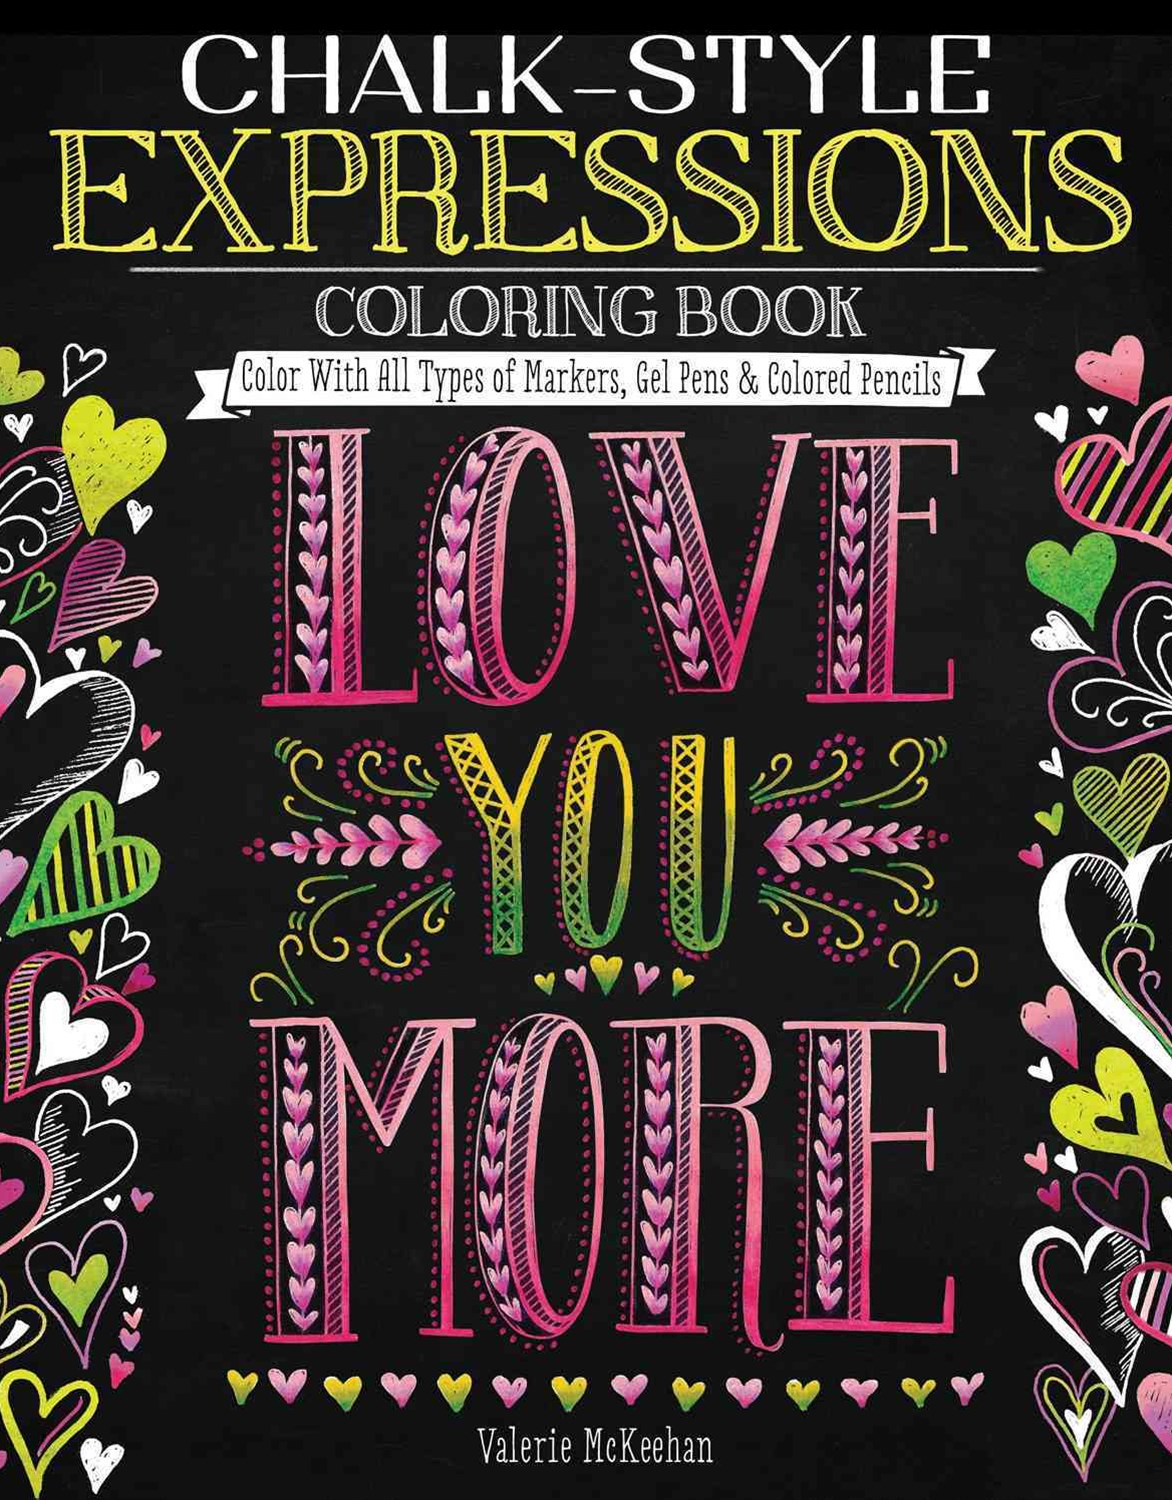 Chalk-Style Expressions Coloring Book